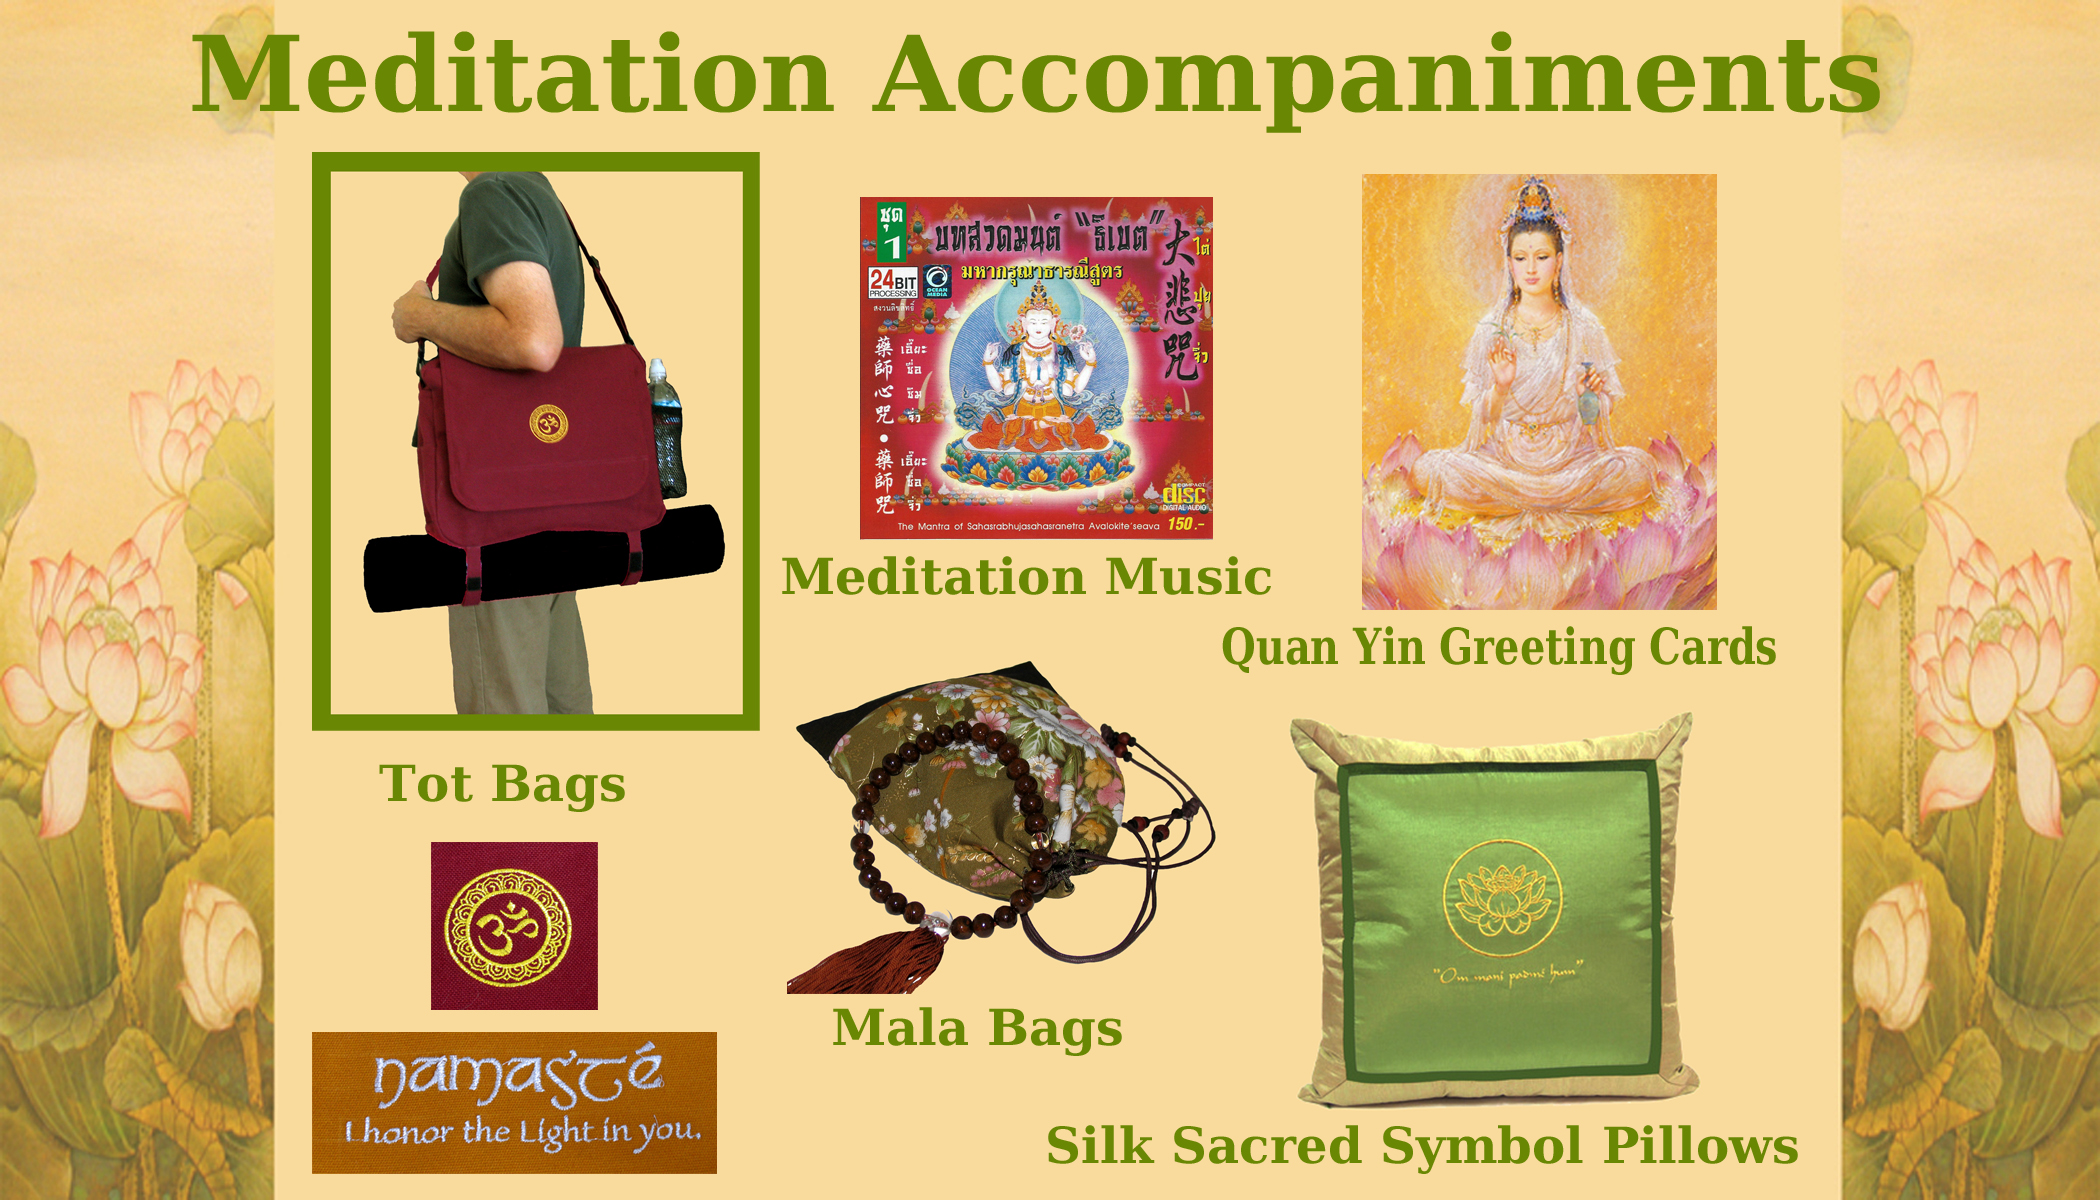 meditation-accompaniments.jpg